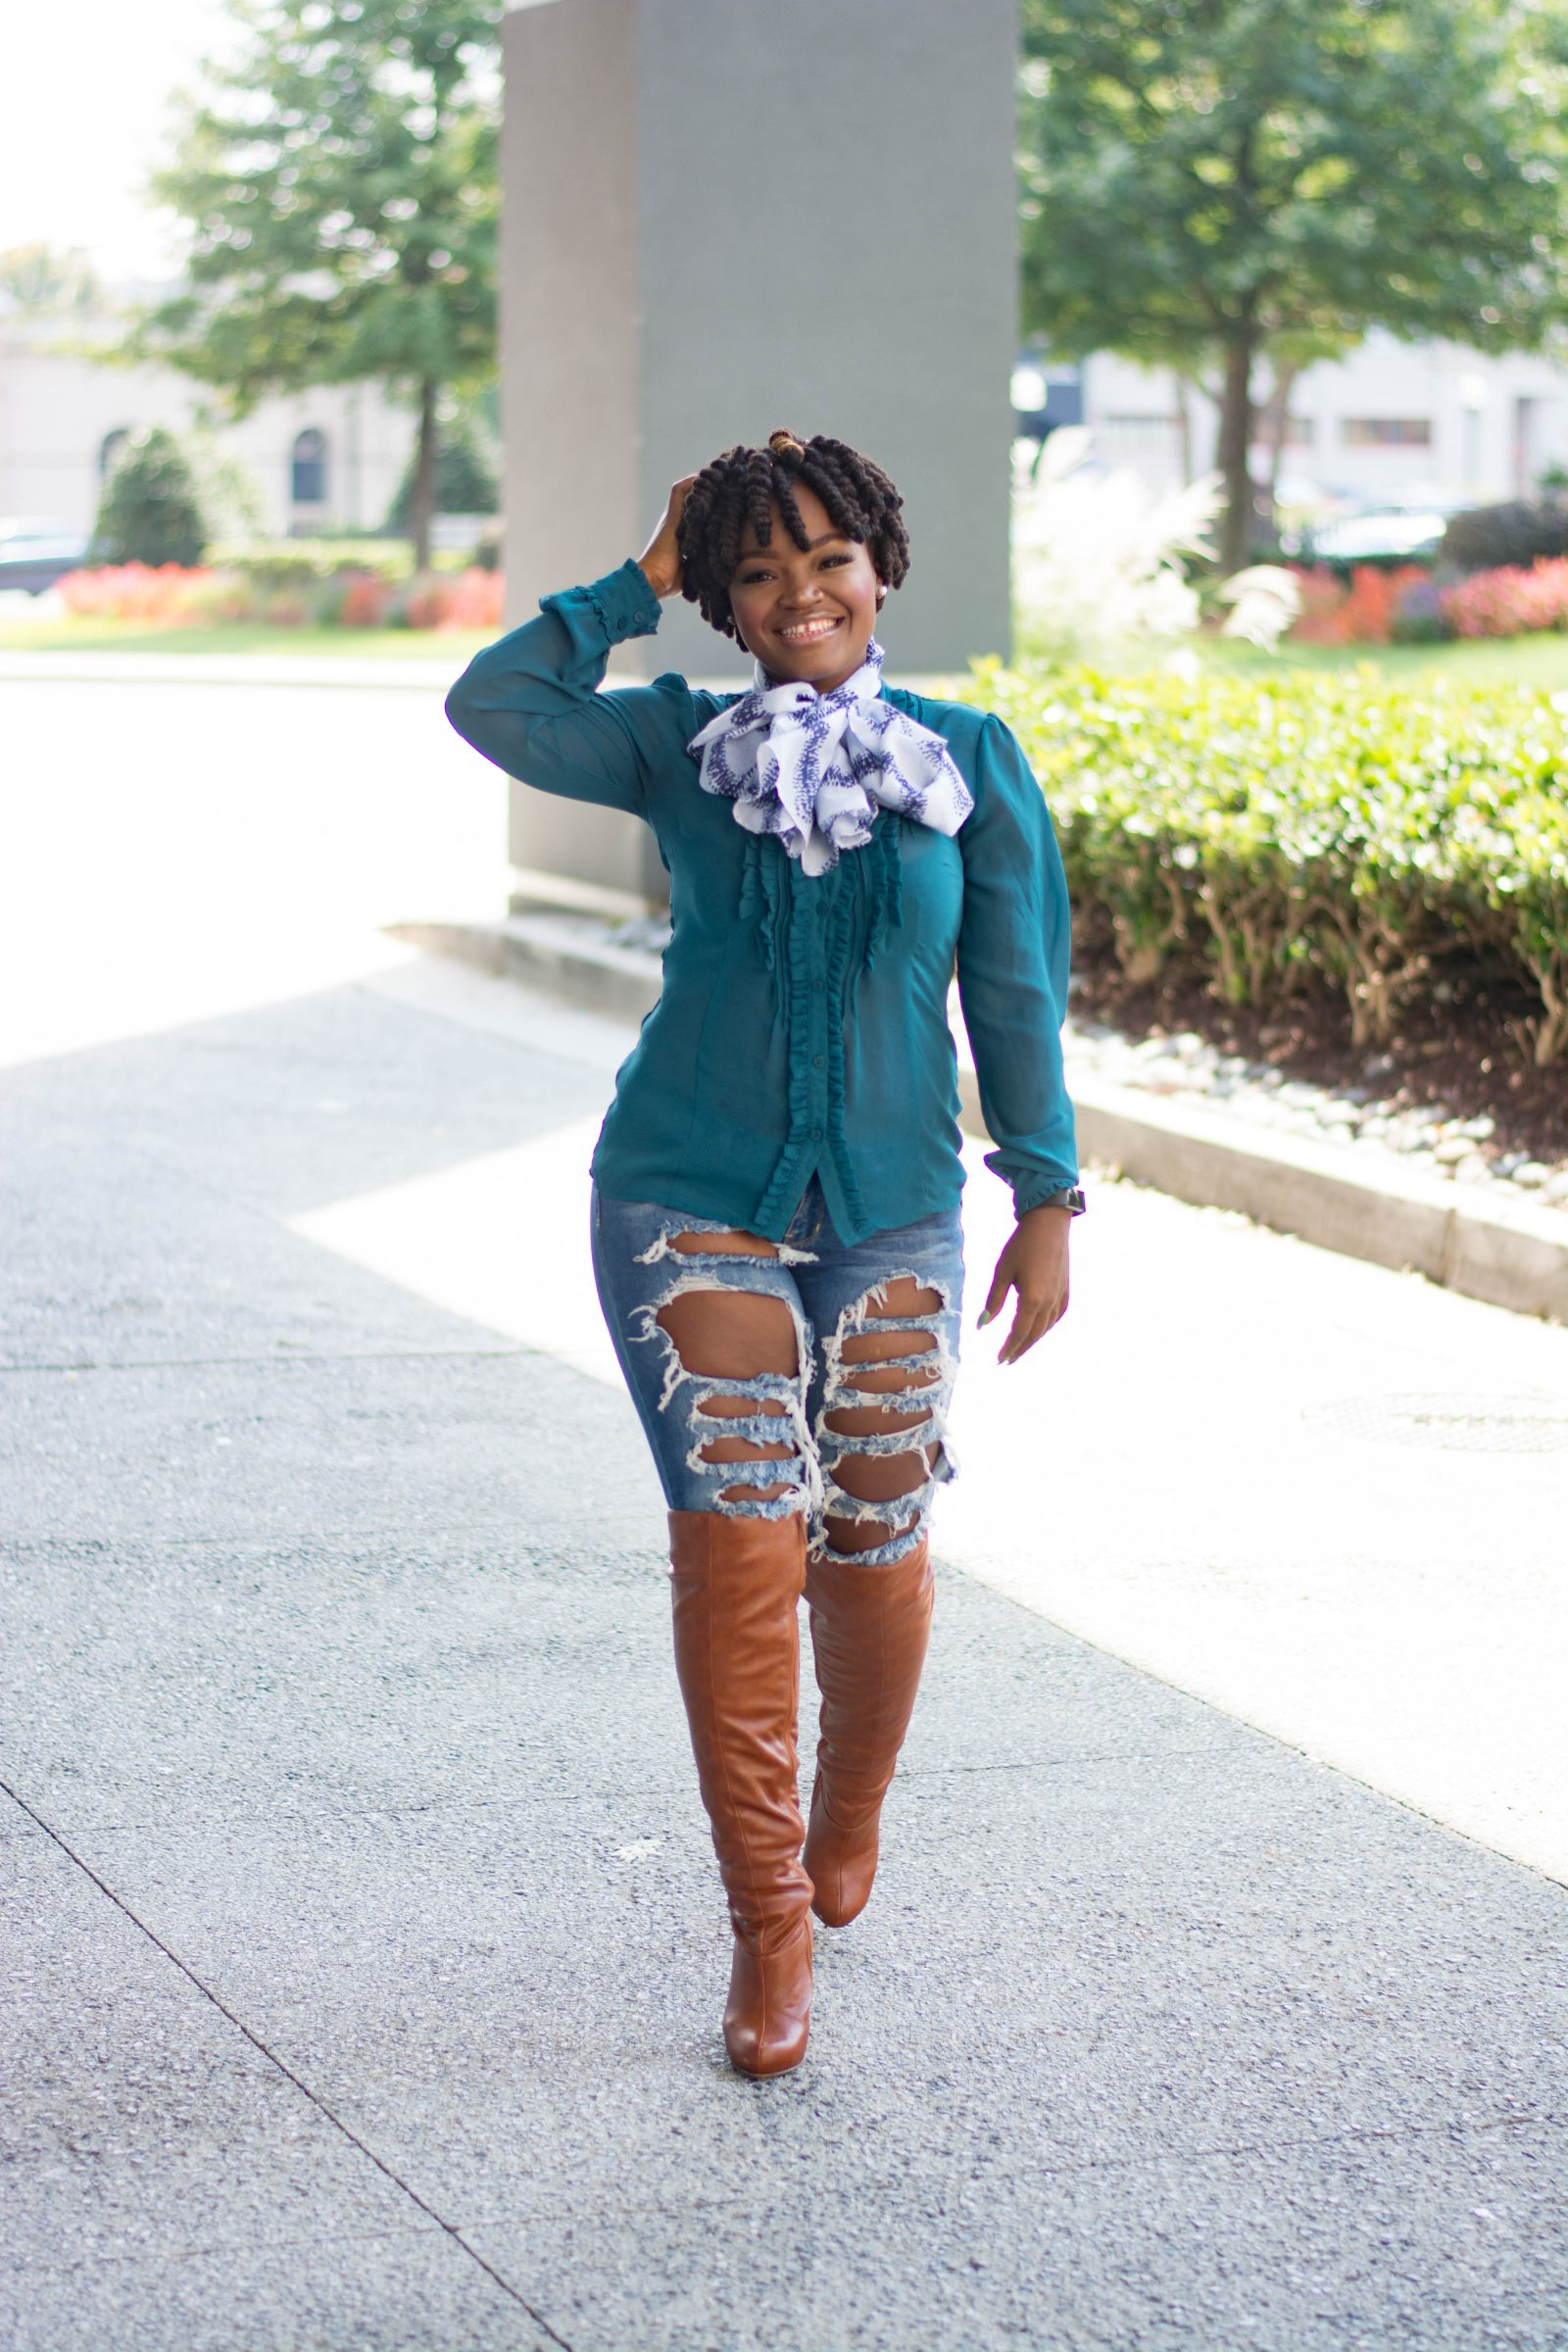 SUMMER FALL TRANSITION RIPPED DENIM X BOOTS